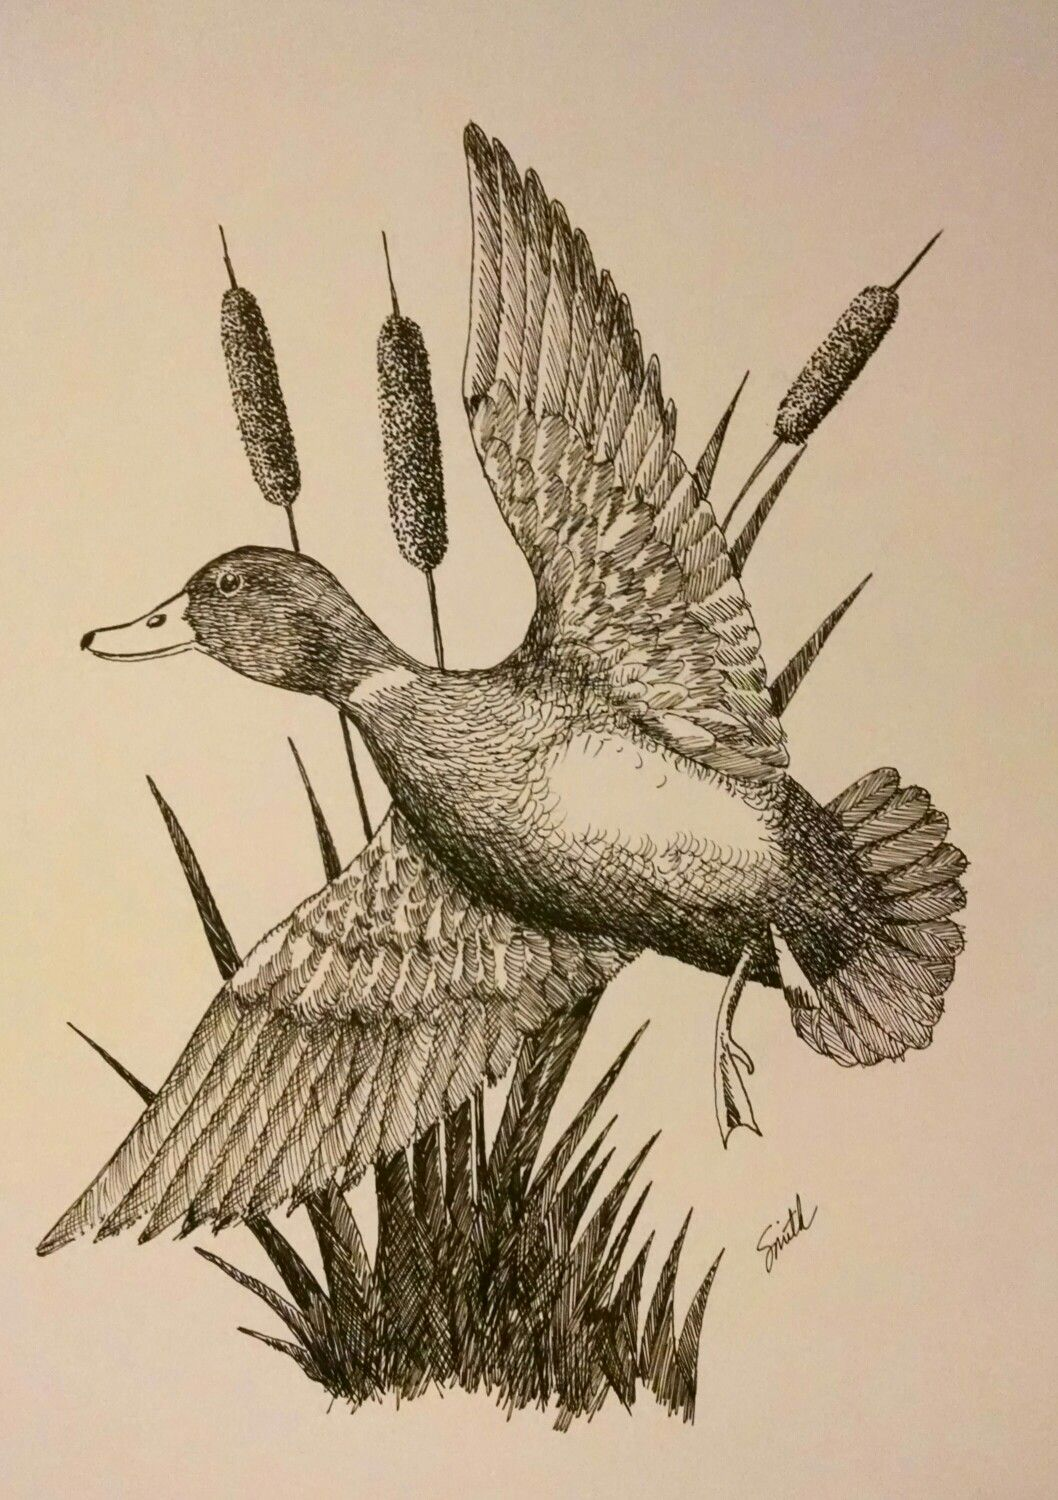 Drake Mallard Duck illustration in pen & ink. in 2019.